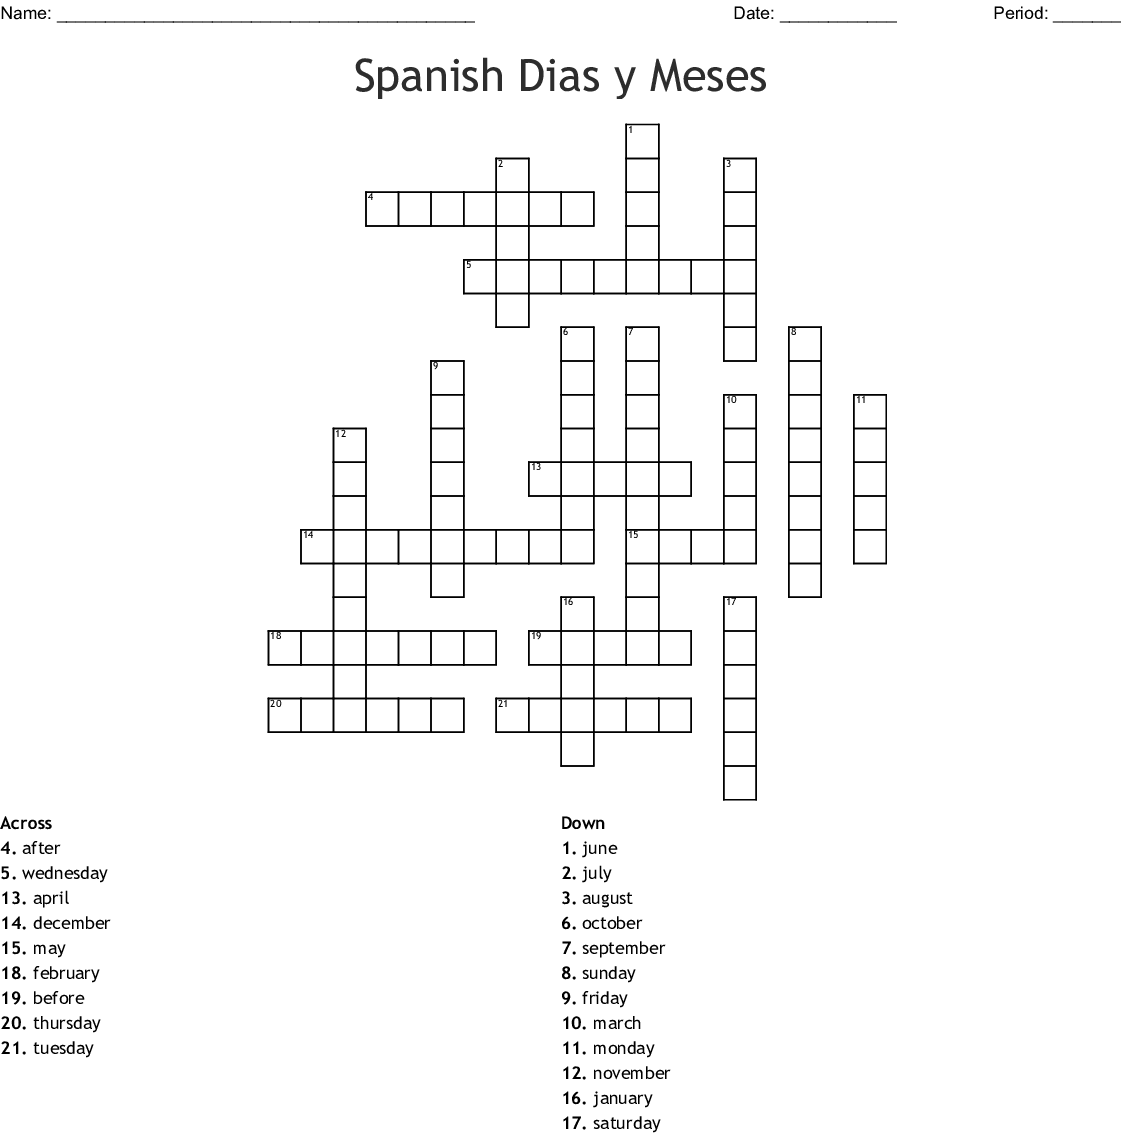 Months And Days Of The Week Crossword